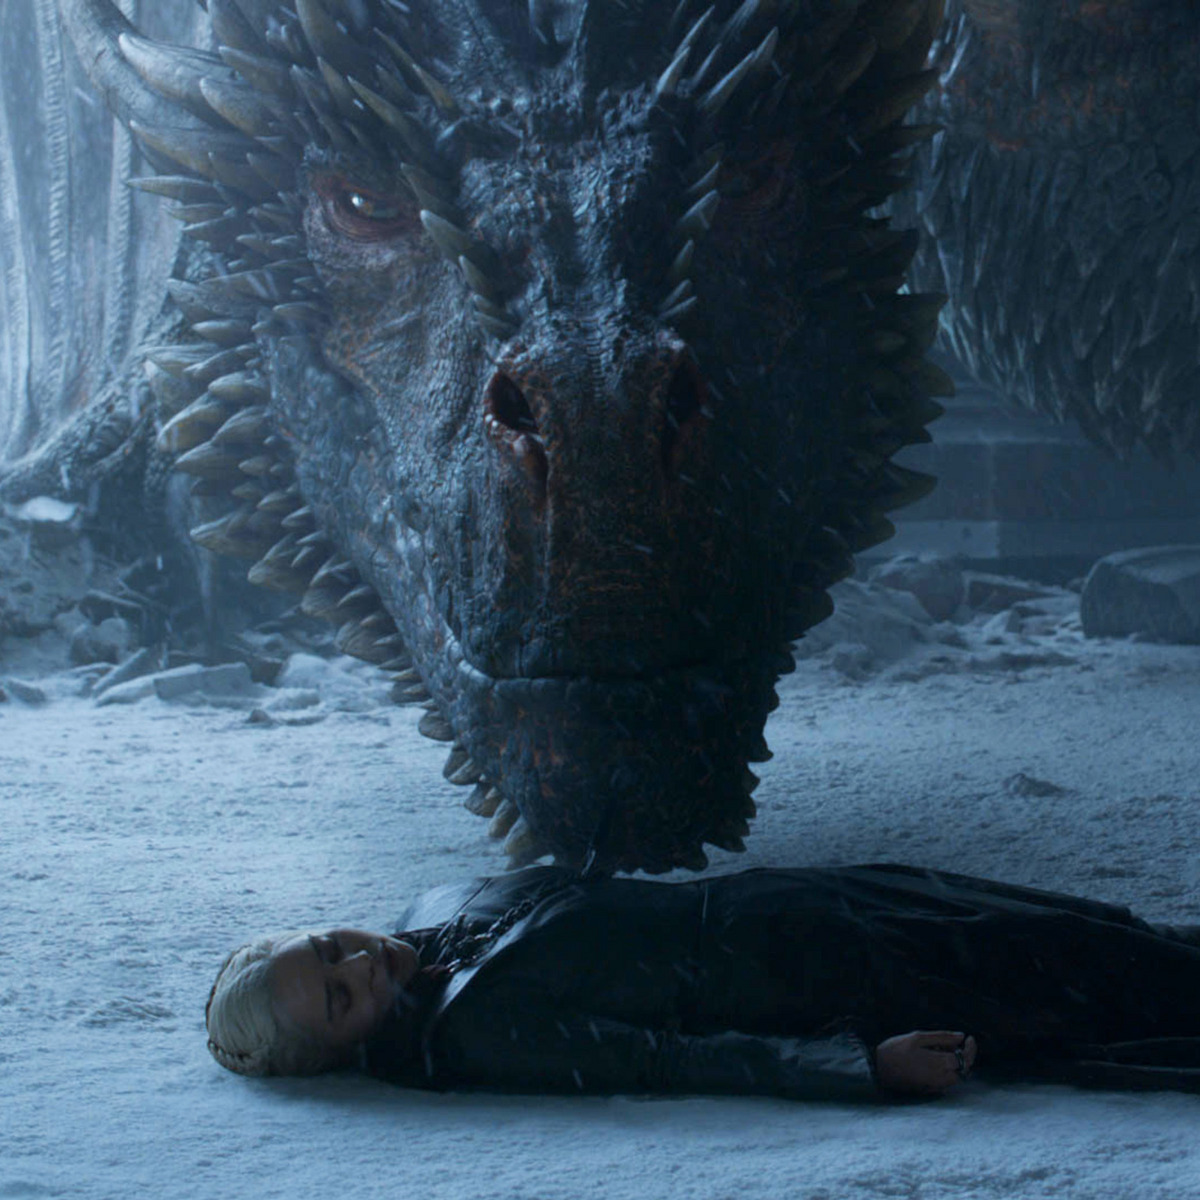 Game of Thrones' Finale: Where Did Drogon Go With Daenerys?